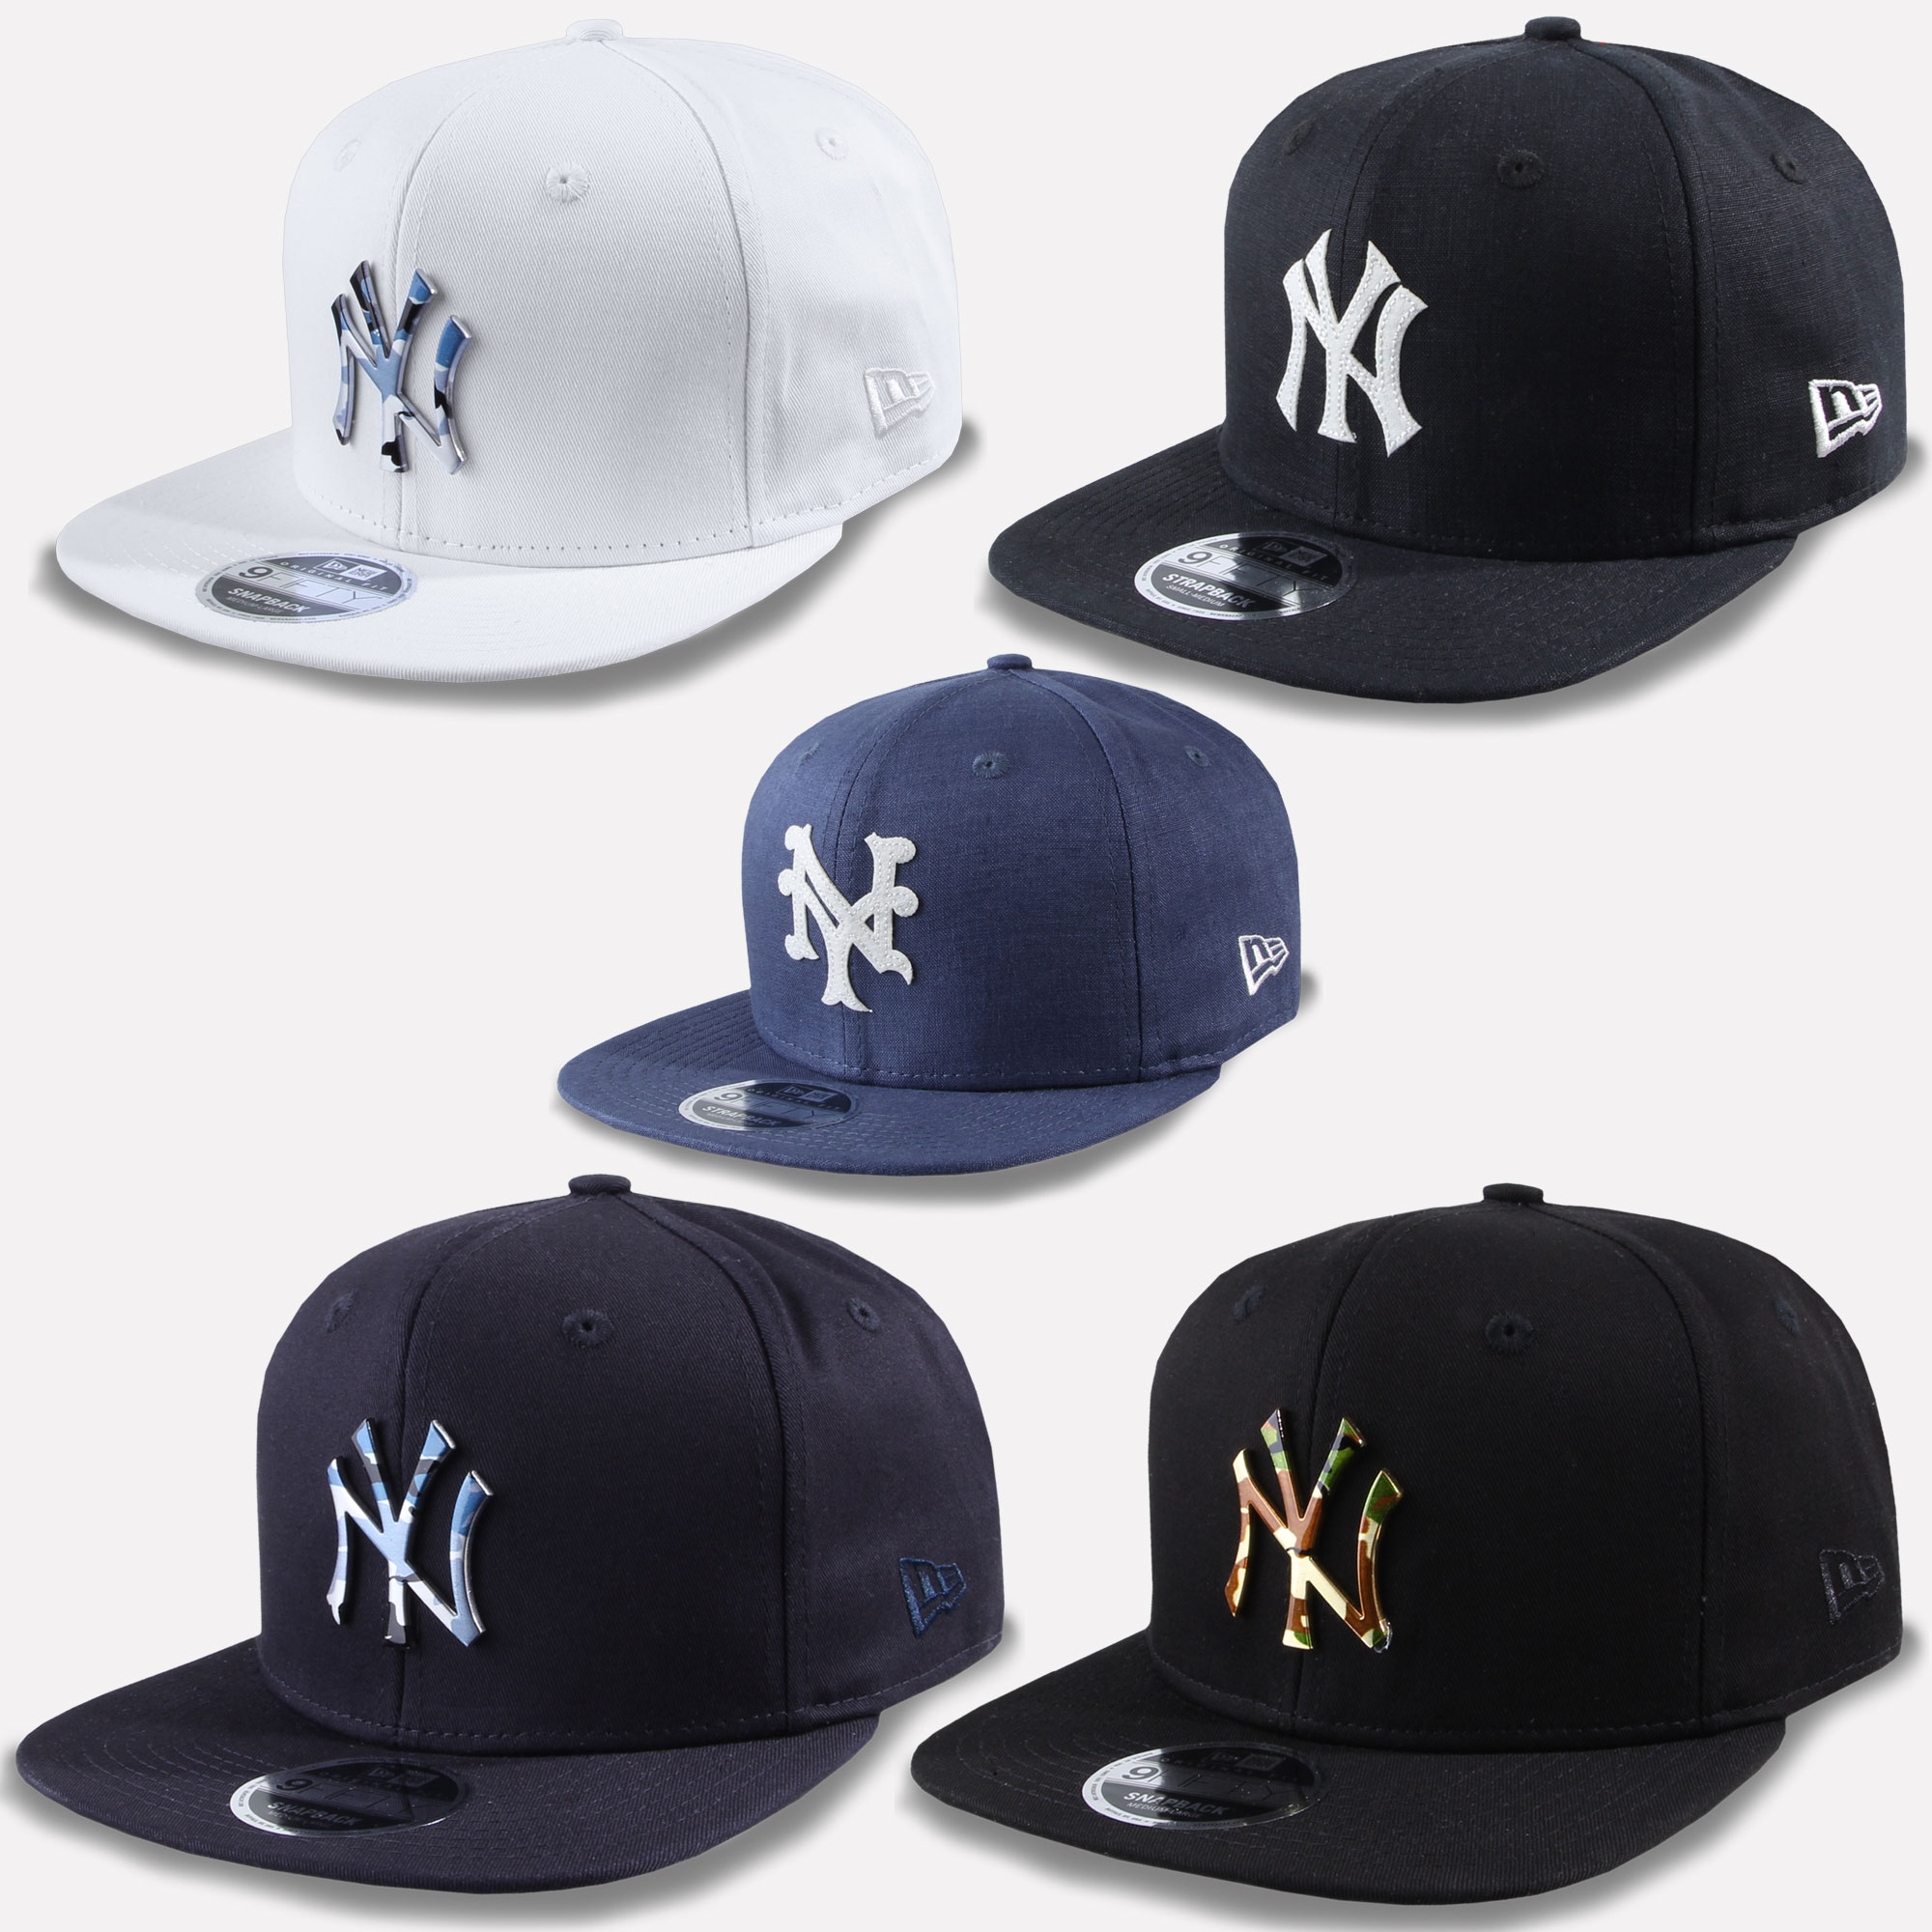 94078a83c95 New Era 9fifty Snapback Cap MLB Team New York Yankees Camo Metal New ...